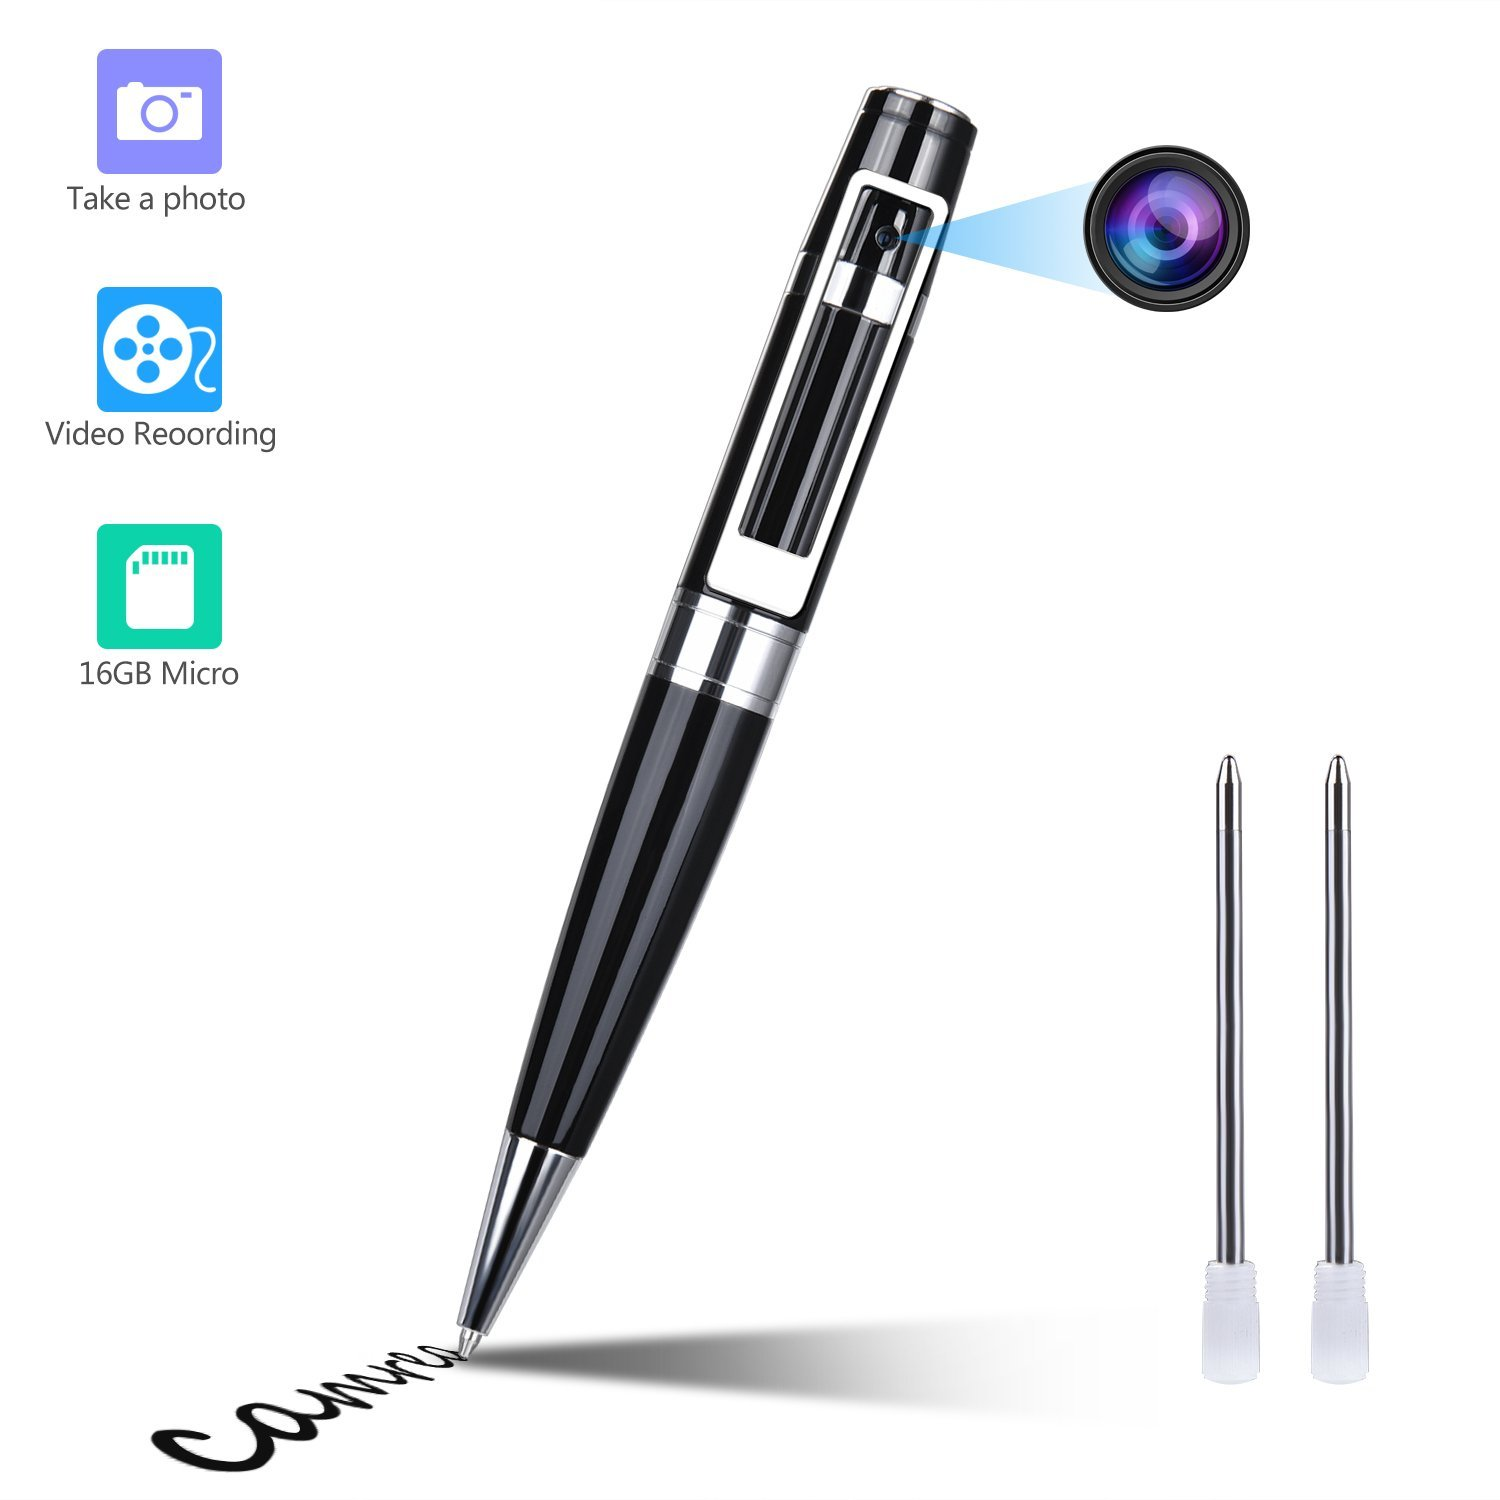 Spy Camera Pen Hidden Camera Meeting Video Recorder HD 1080P Mini Portable DVR Cam Built-in 16GB Micro SD Card + 2 Ink Fills by GooSpy (Image #1)